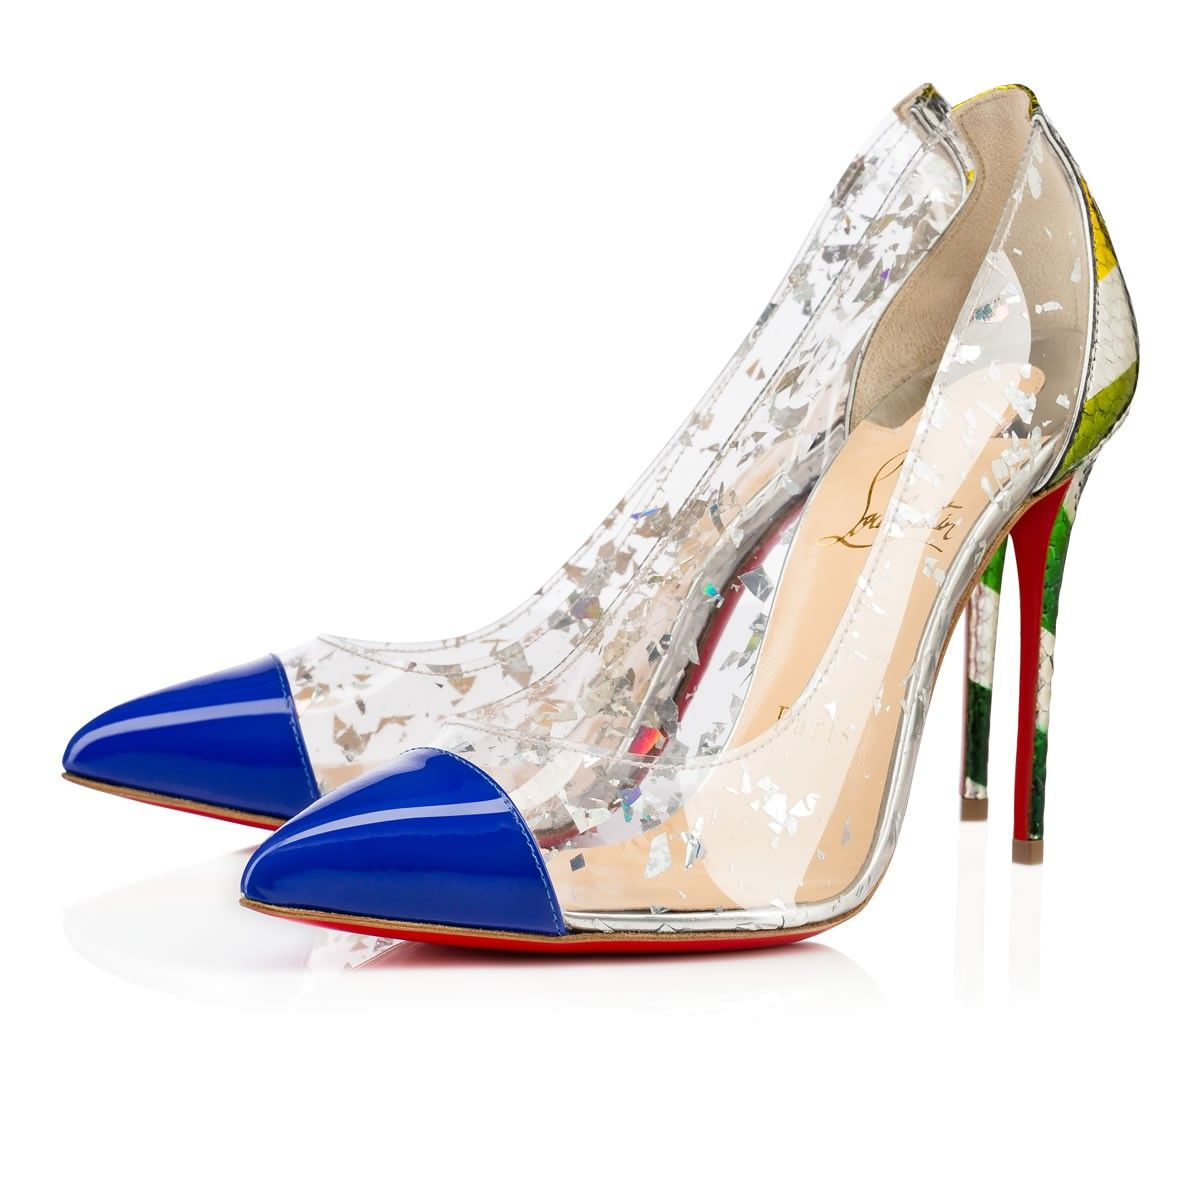 be06ada8b56 CHRISTIAN LOUBOUTIN Debout Patent/Pvc , Electric, Python, Women ...